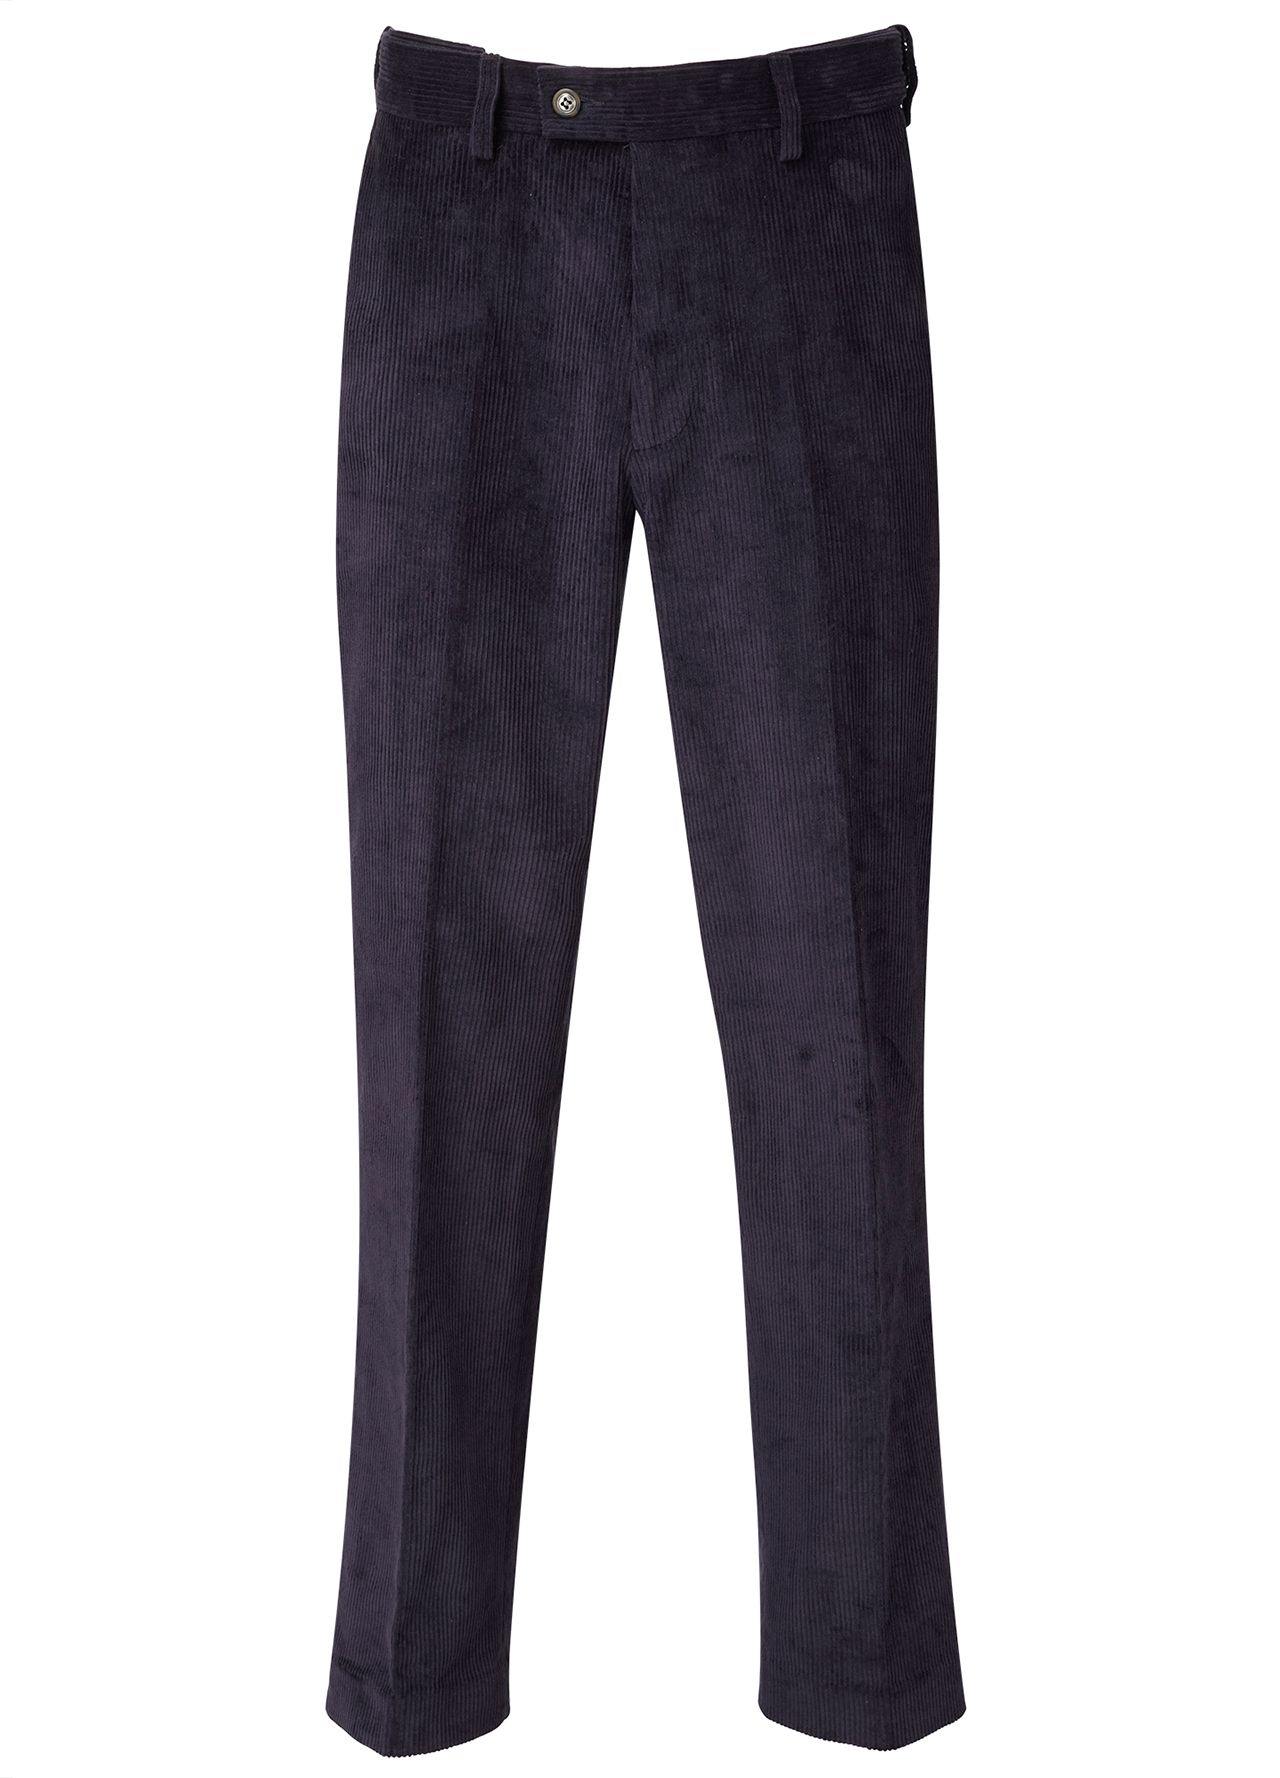 Newport tailored trousers